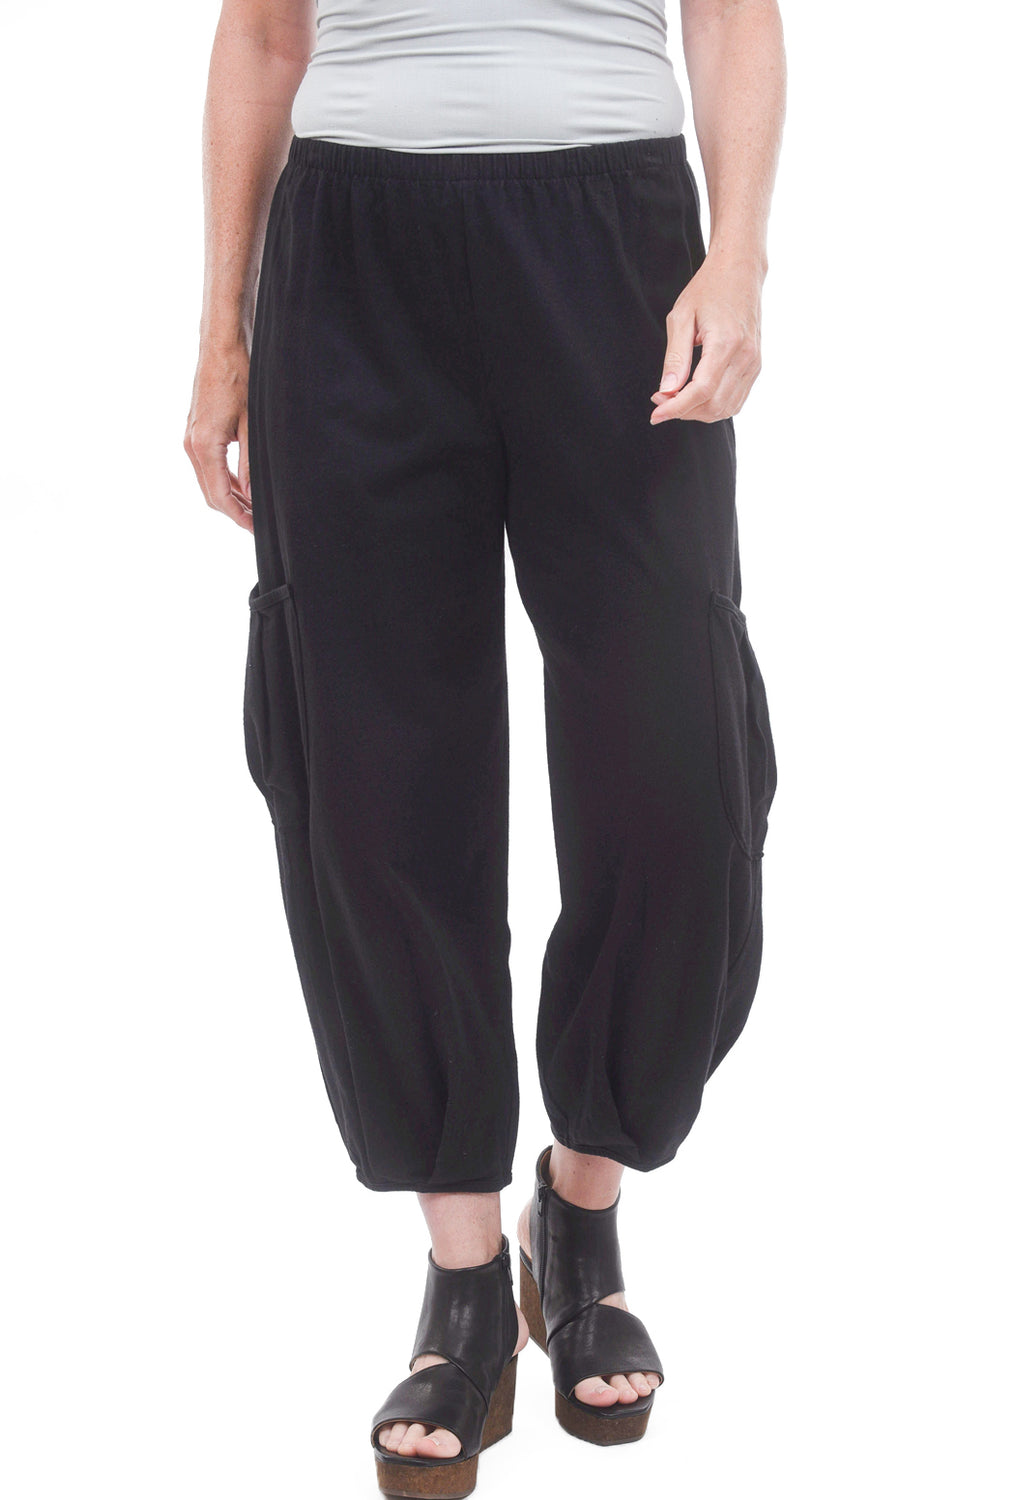 Fenini Side Pocket Cropped Pants, Black